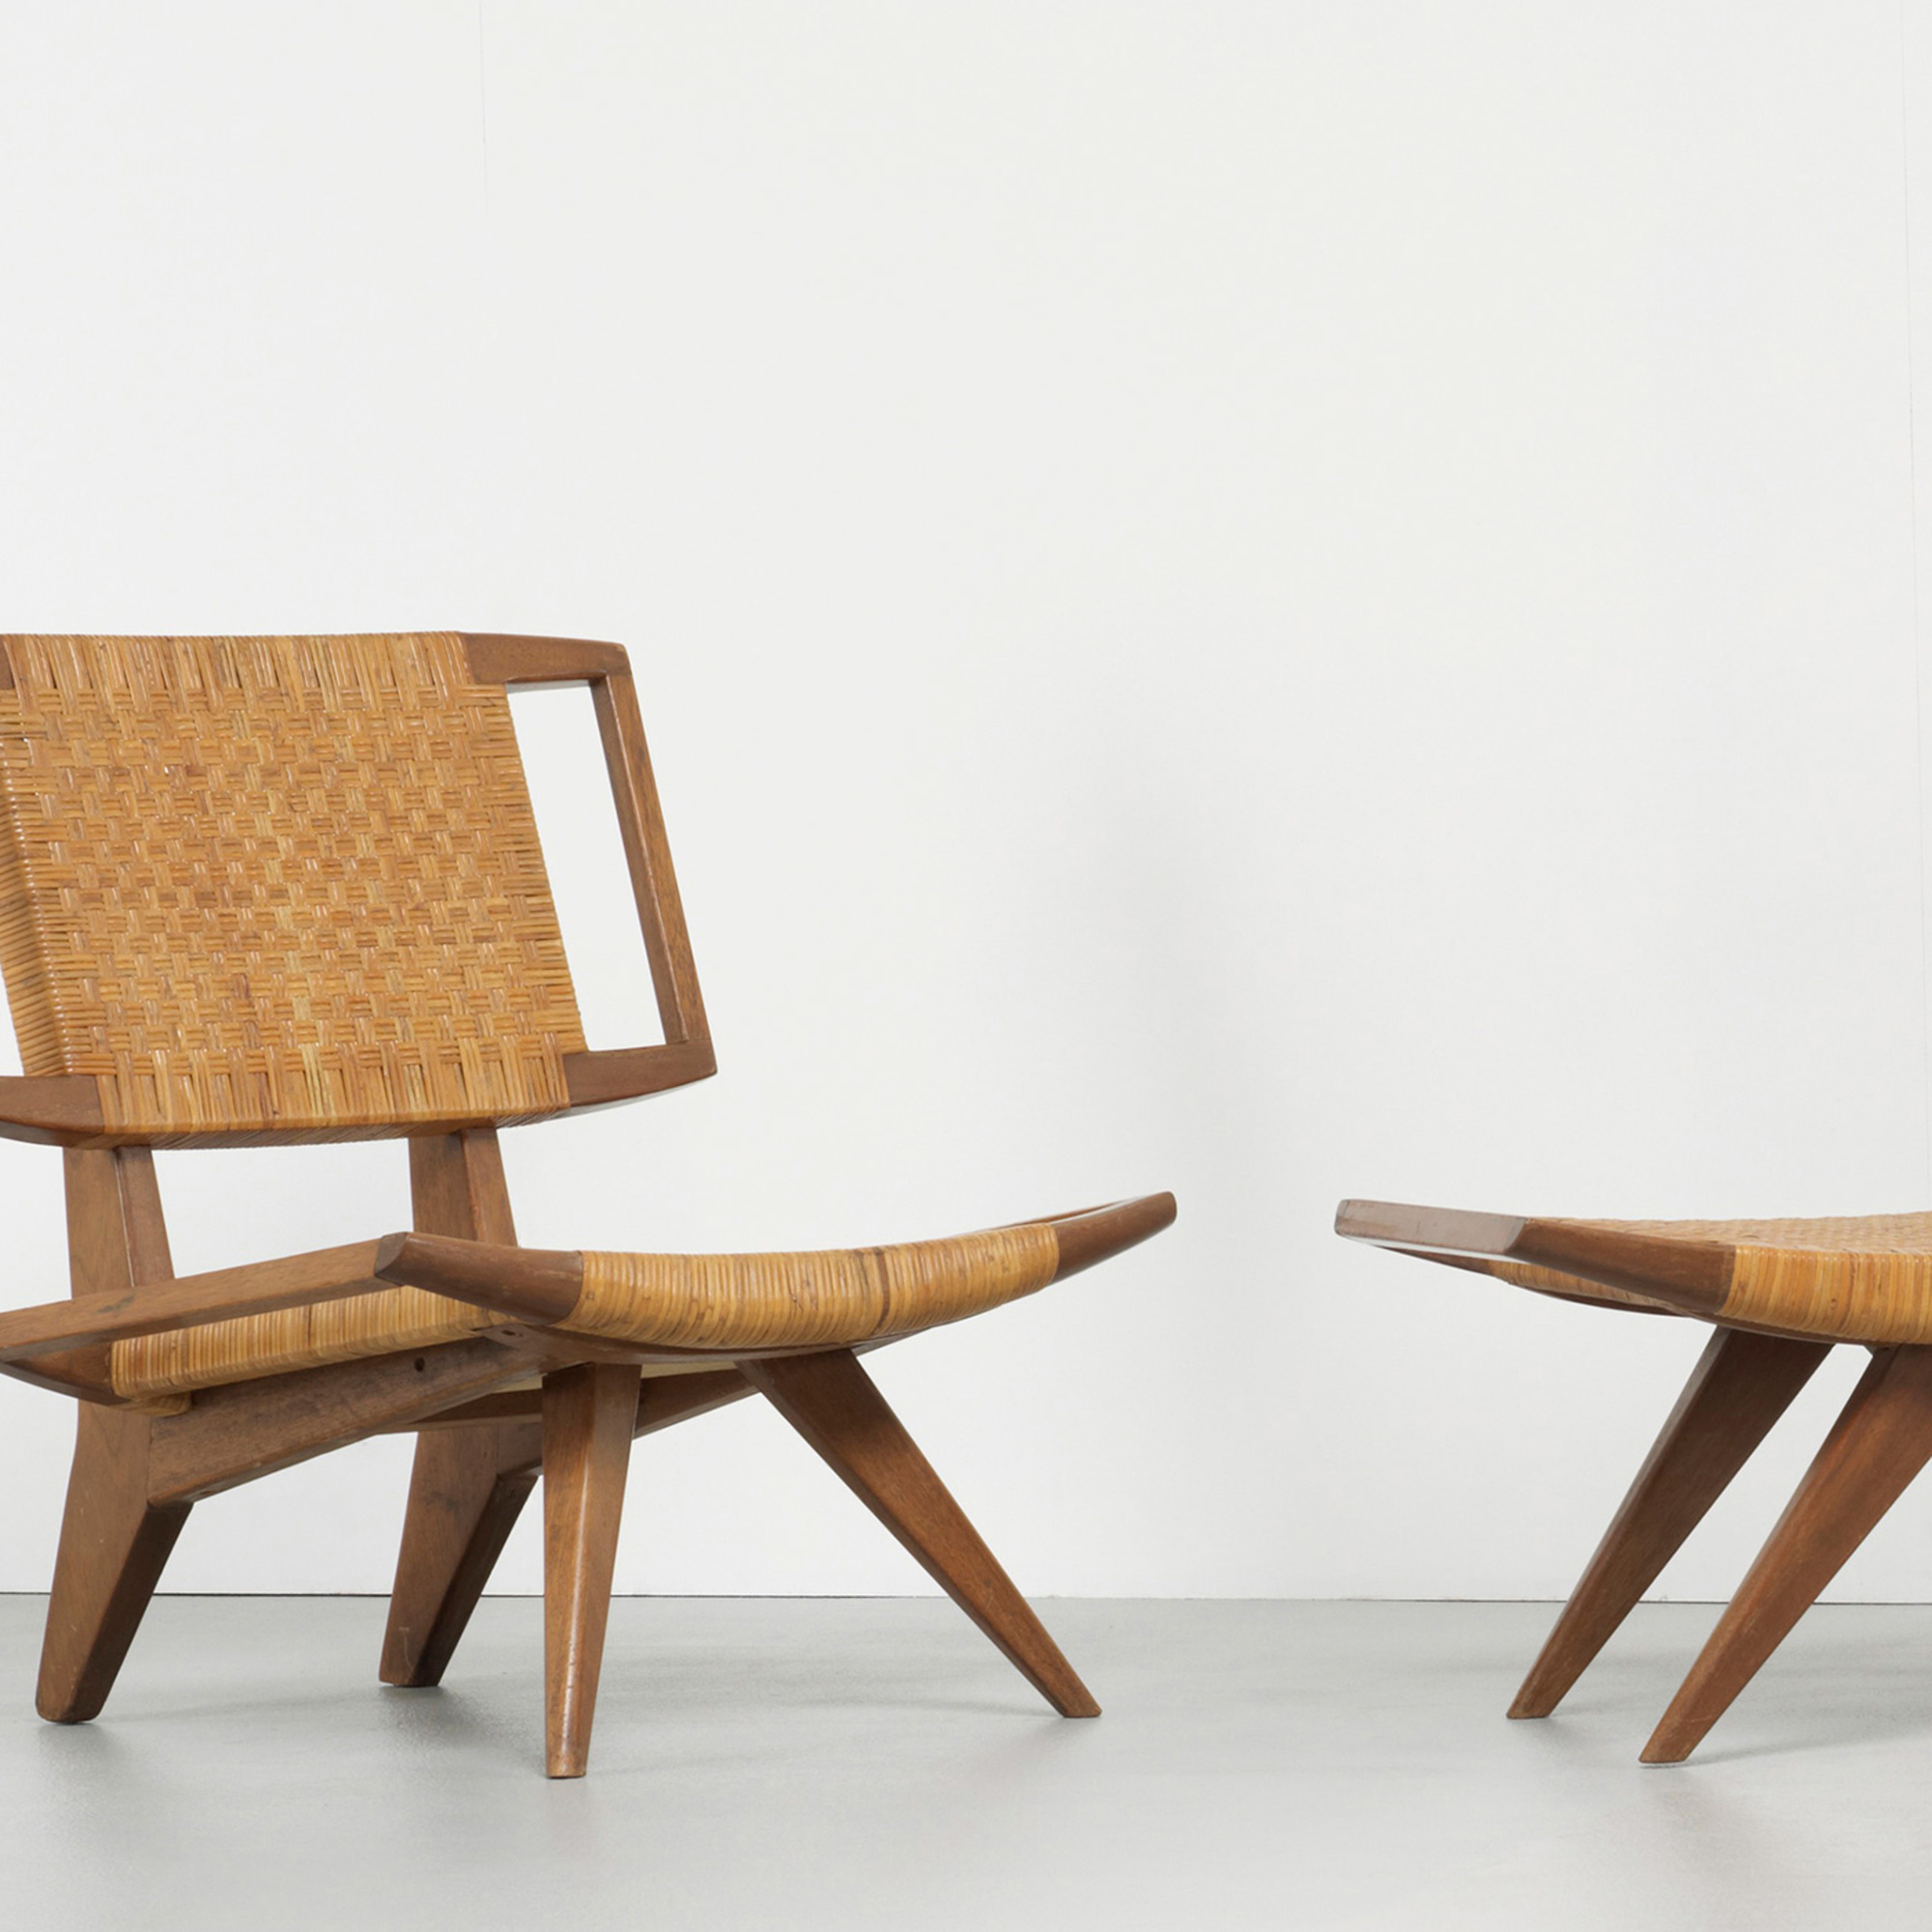 229: Paul Laszlo / pair of lounge chairs and ottoman (2 of 3)